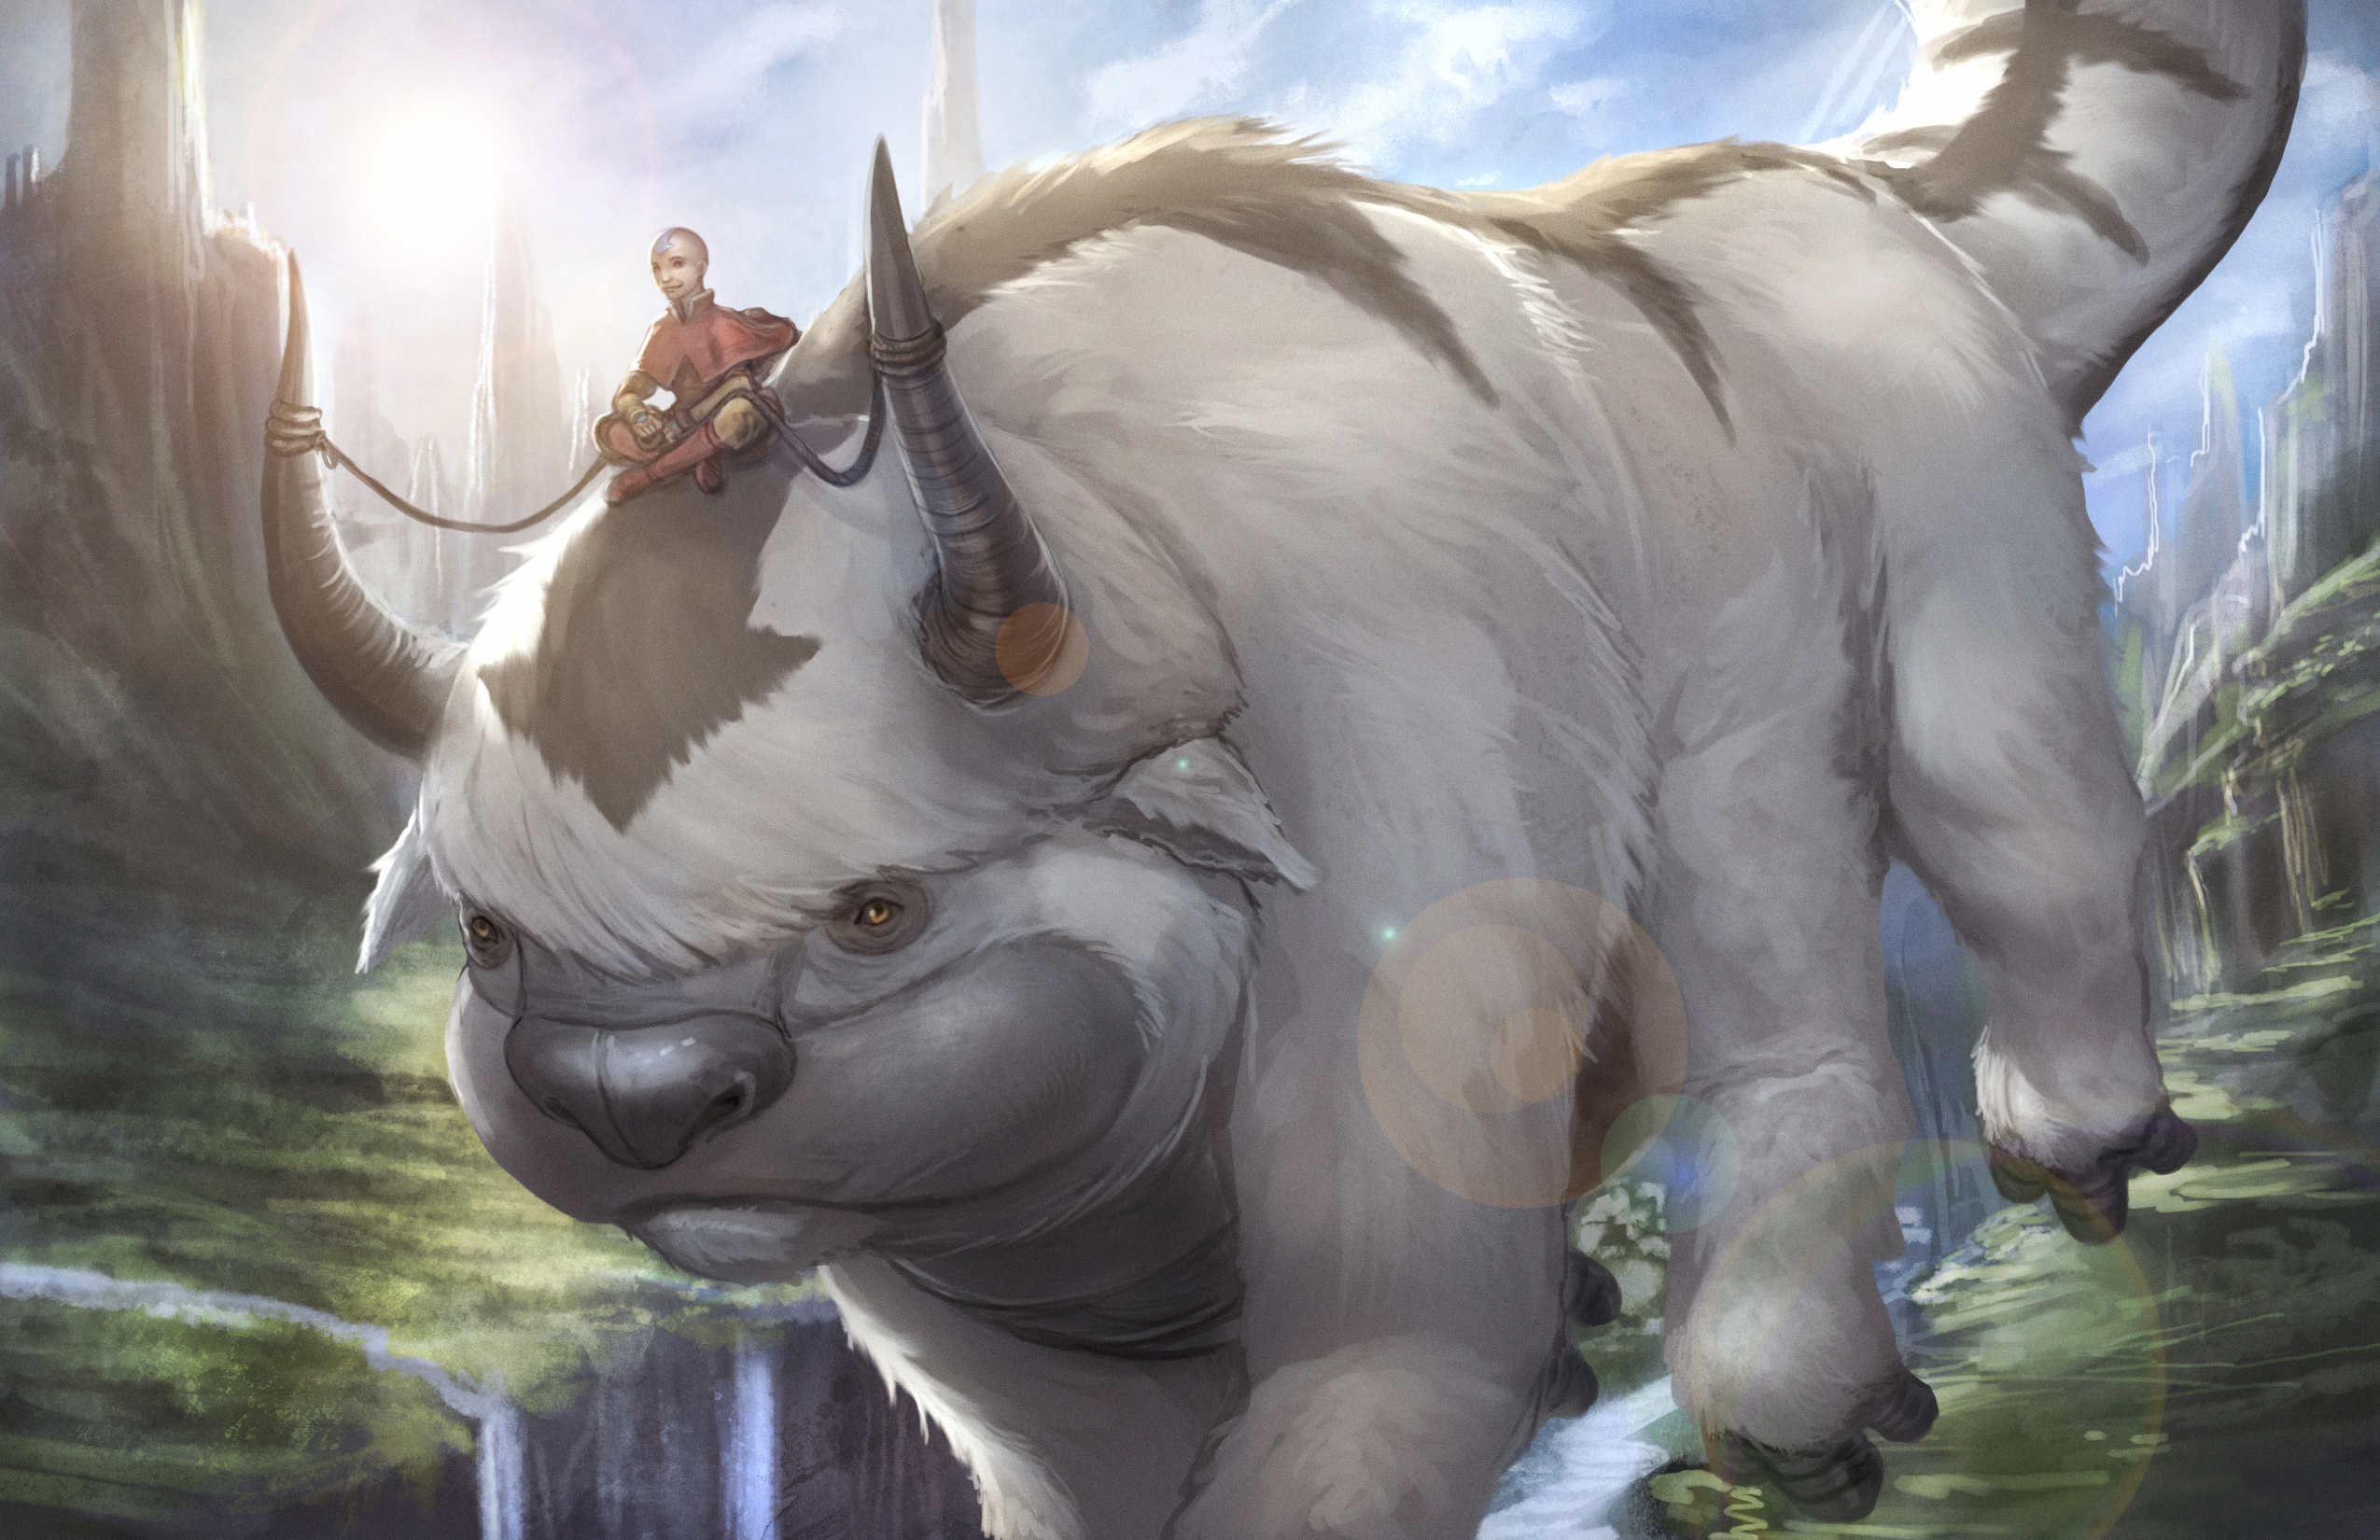 Avatar The Last Airbender Hd Wallpaper Background Image